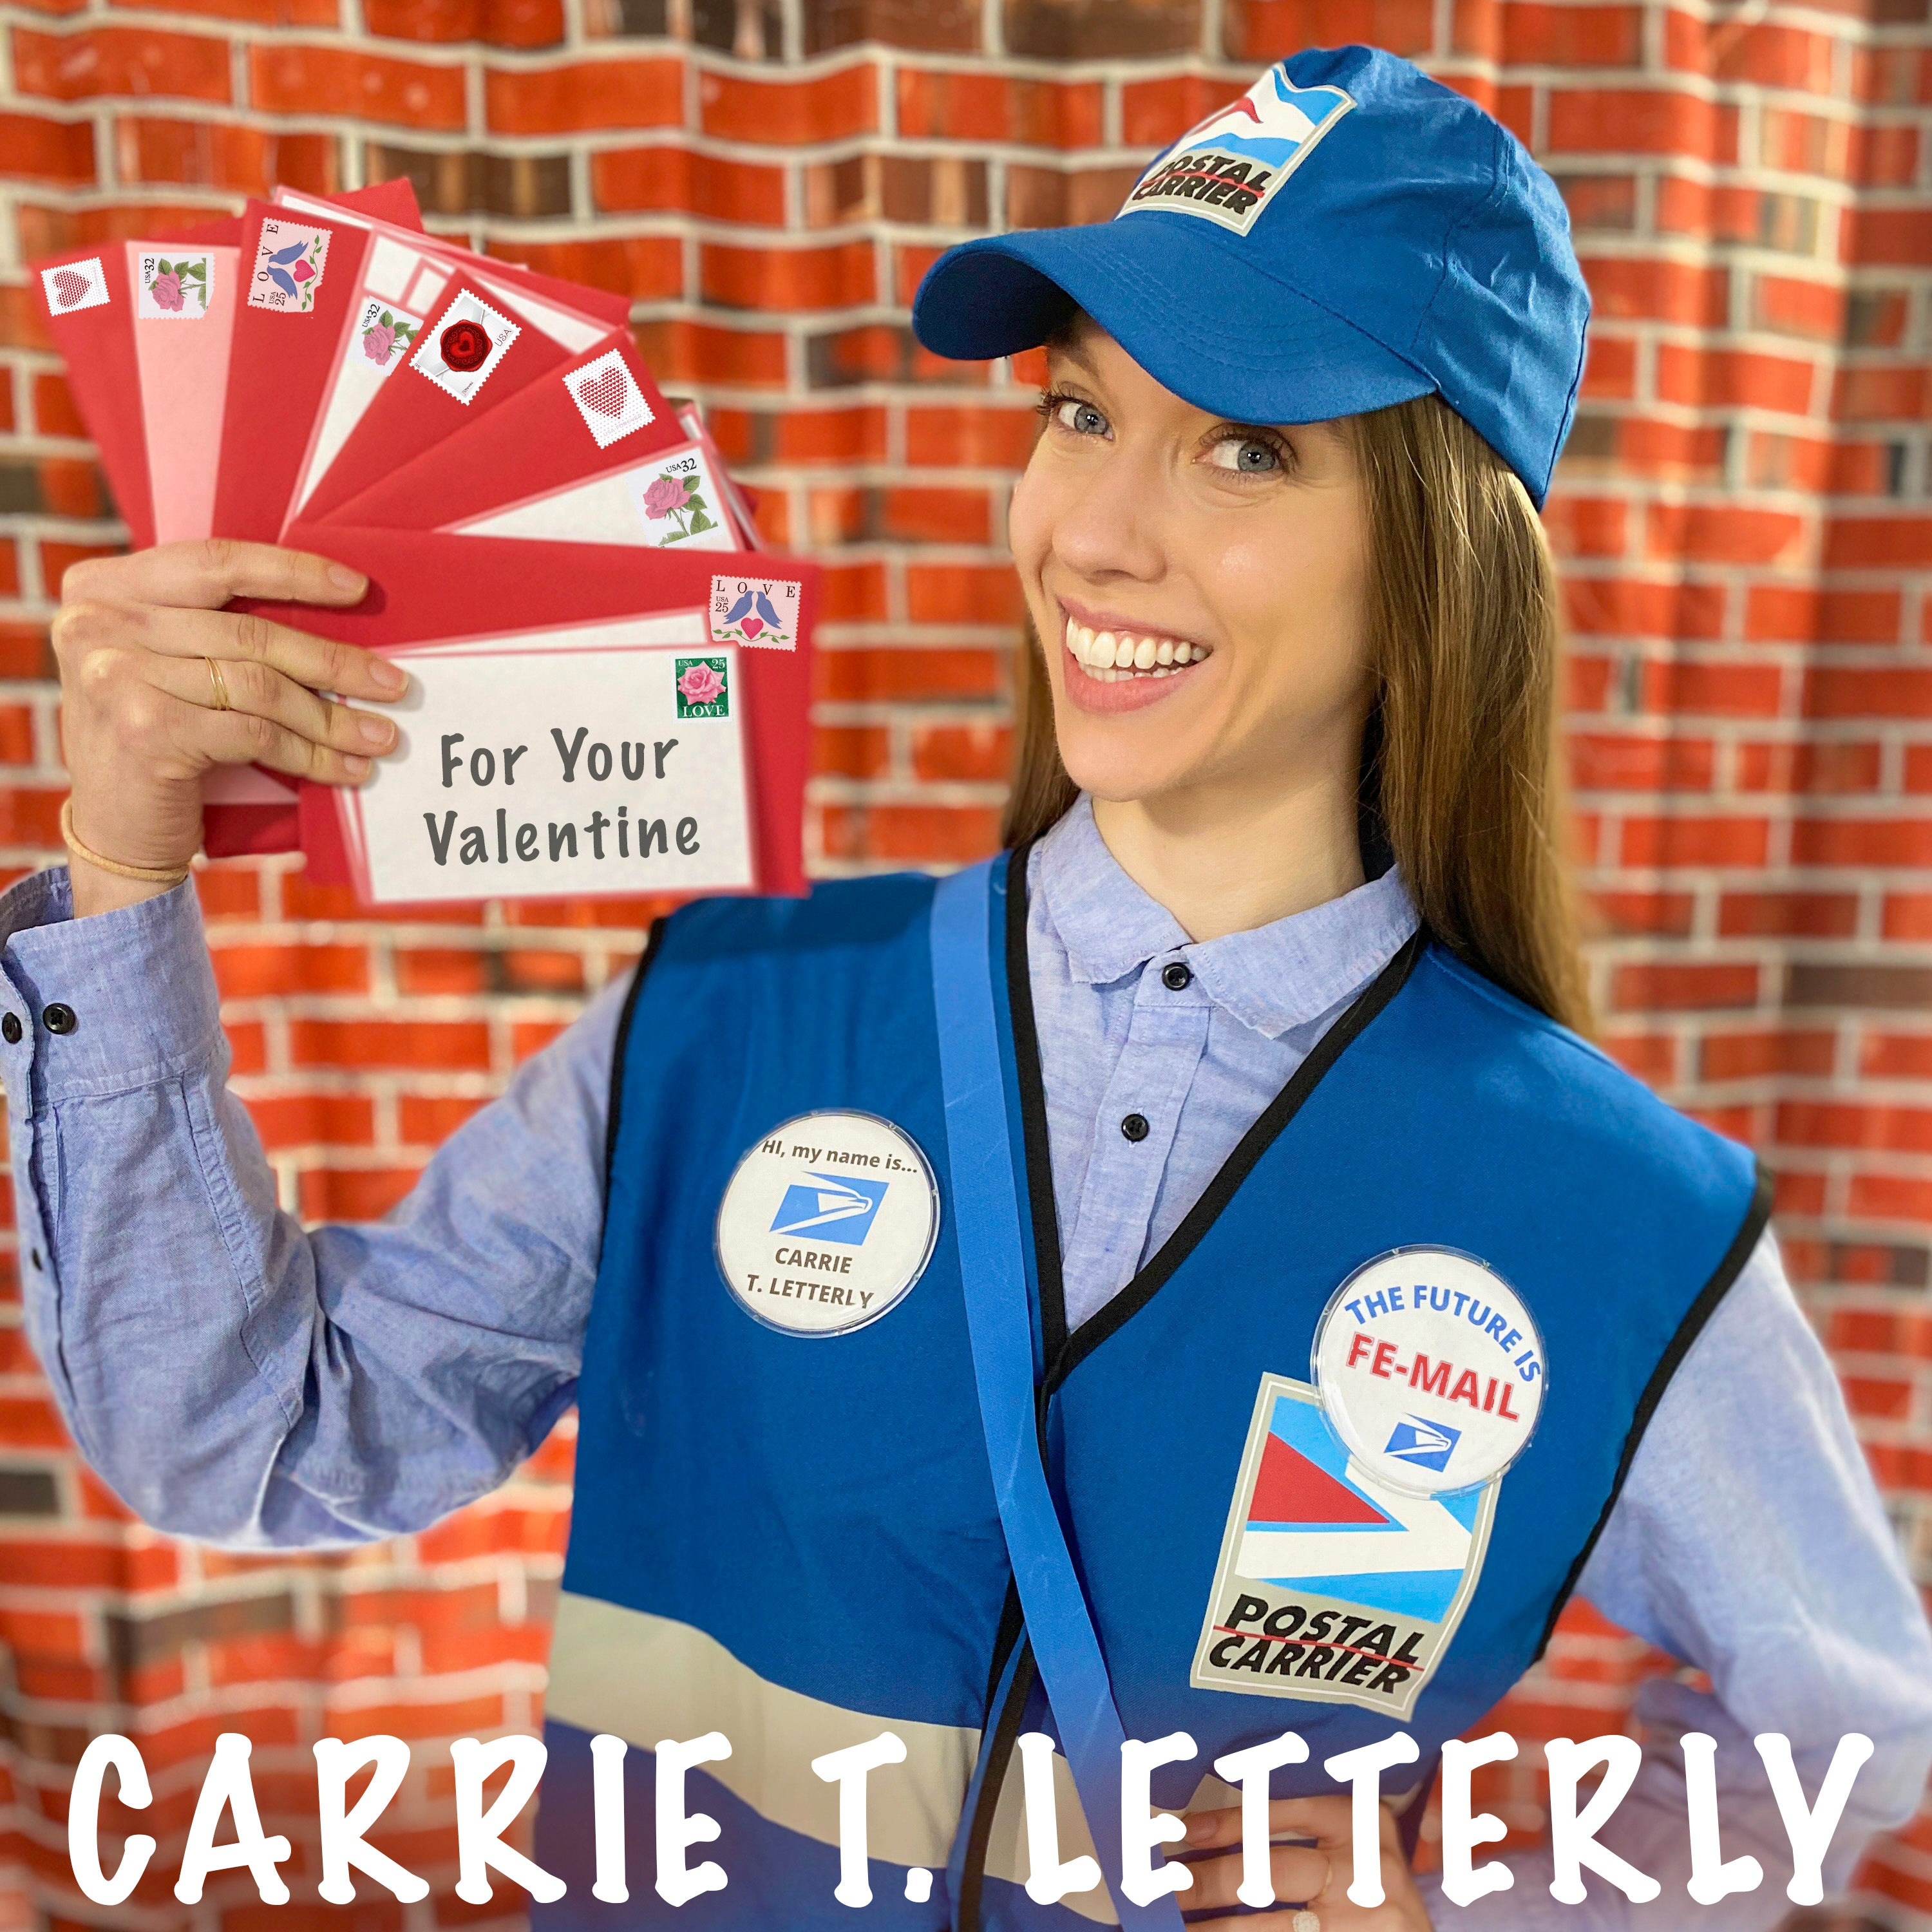 Carrie T. Letterly